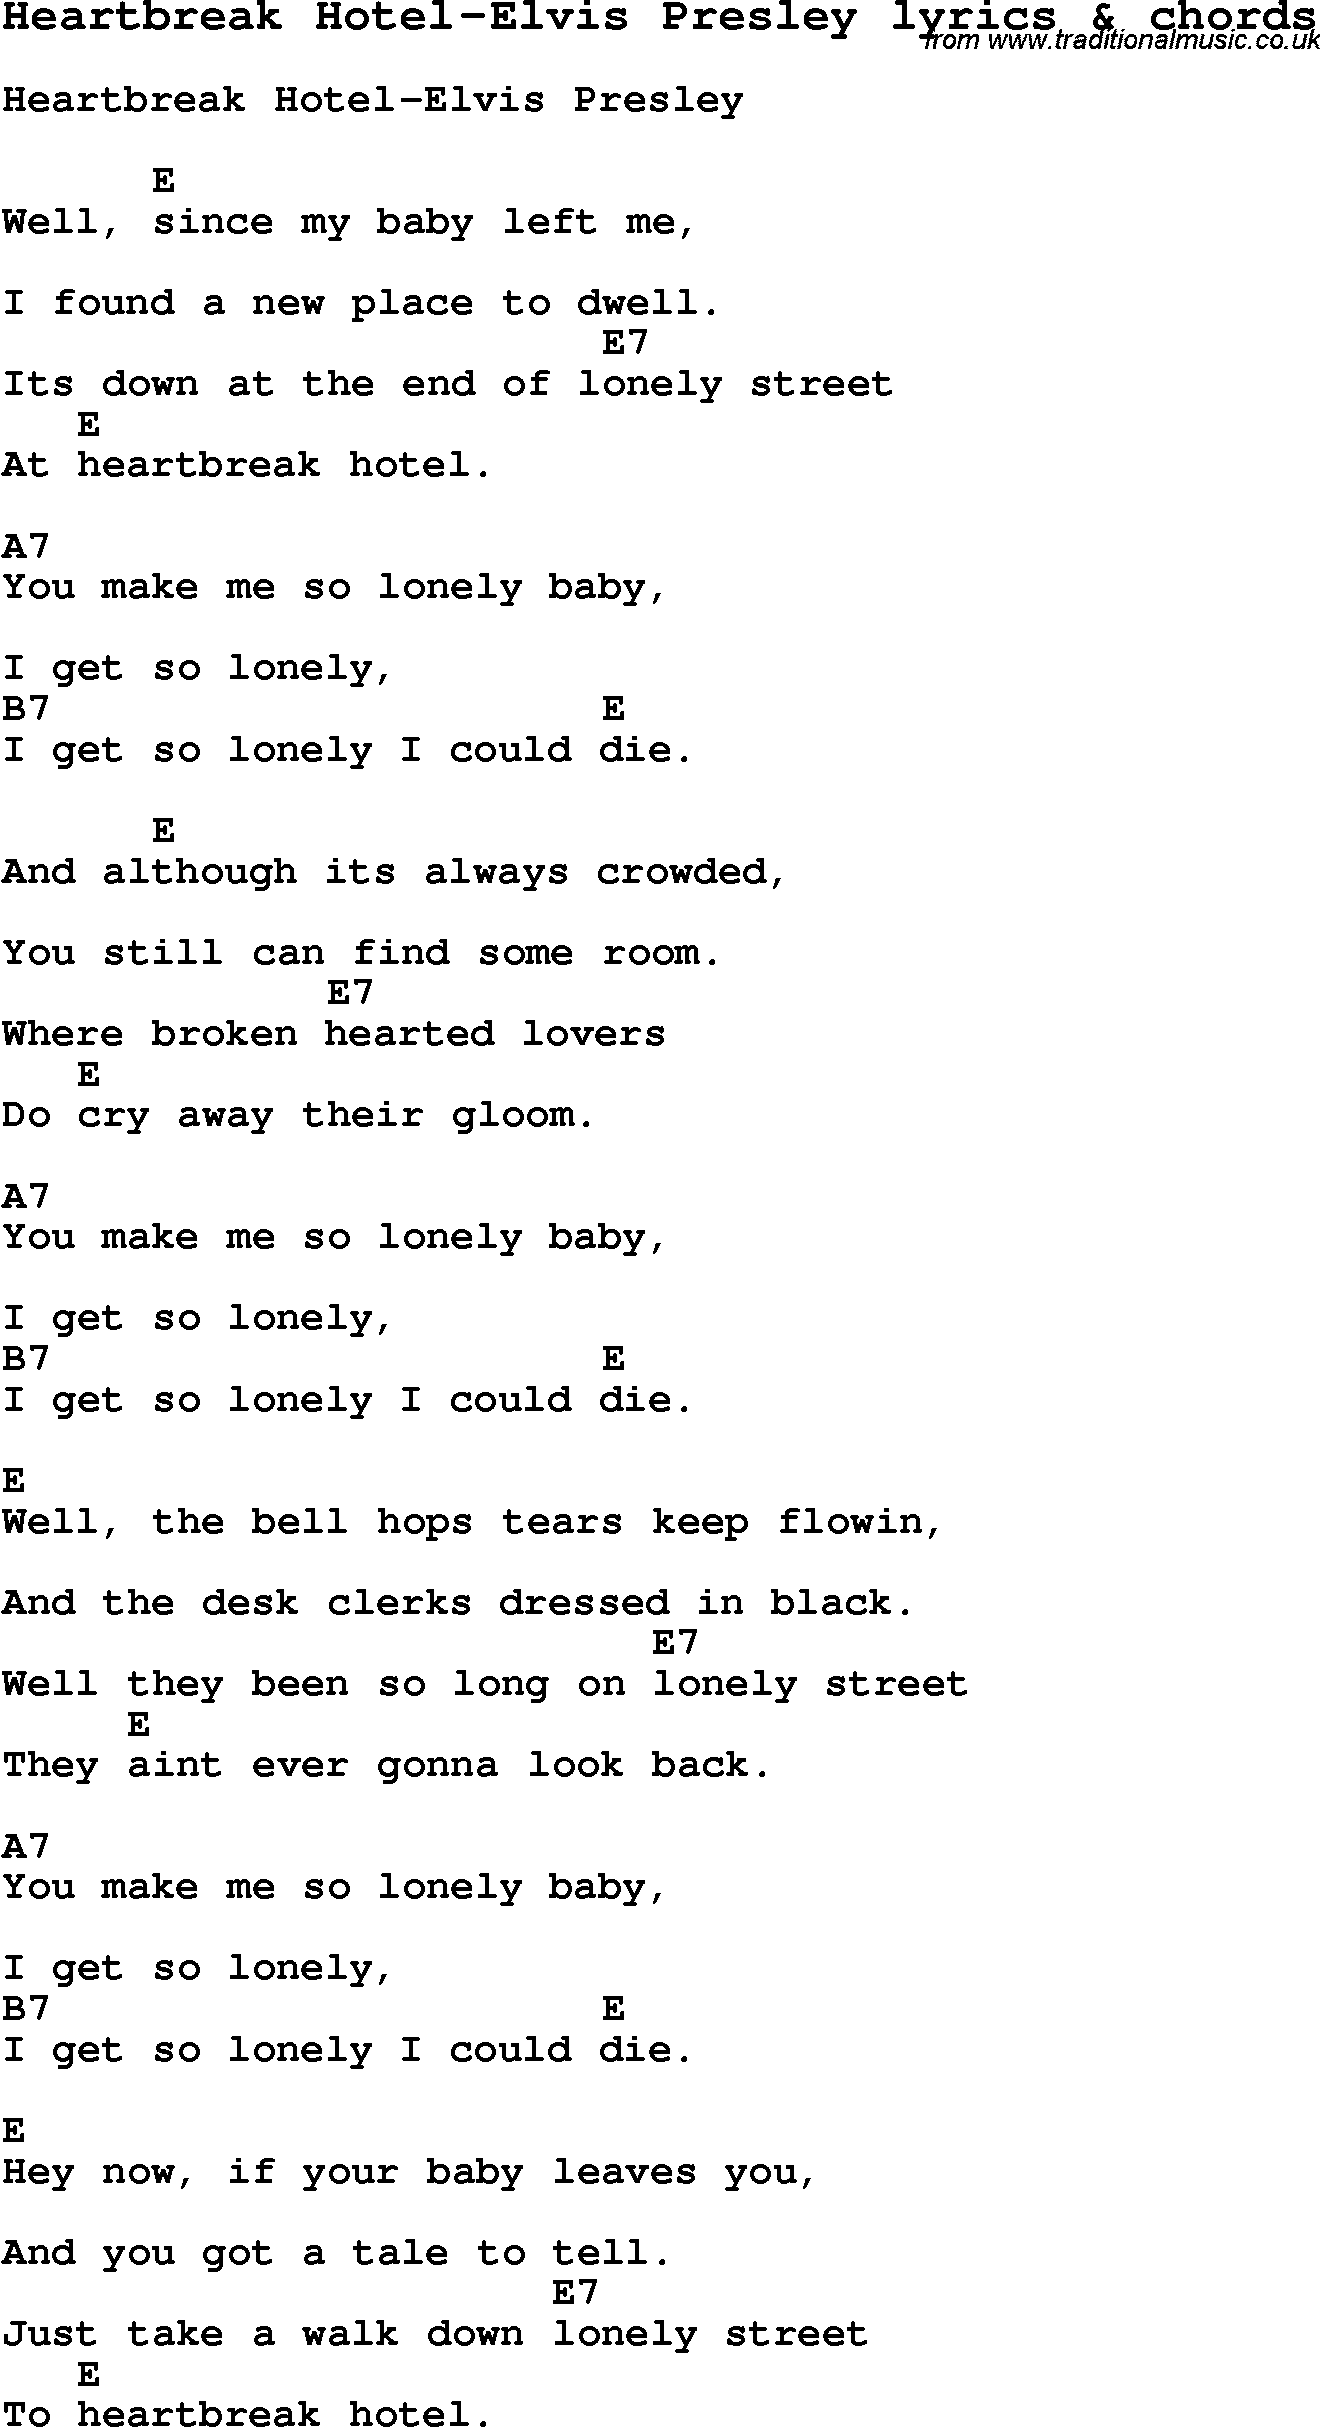 Love Lyrics For Heartbreak Hotel Elvis Presley With Chords For